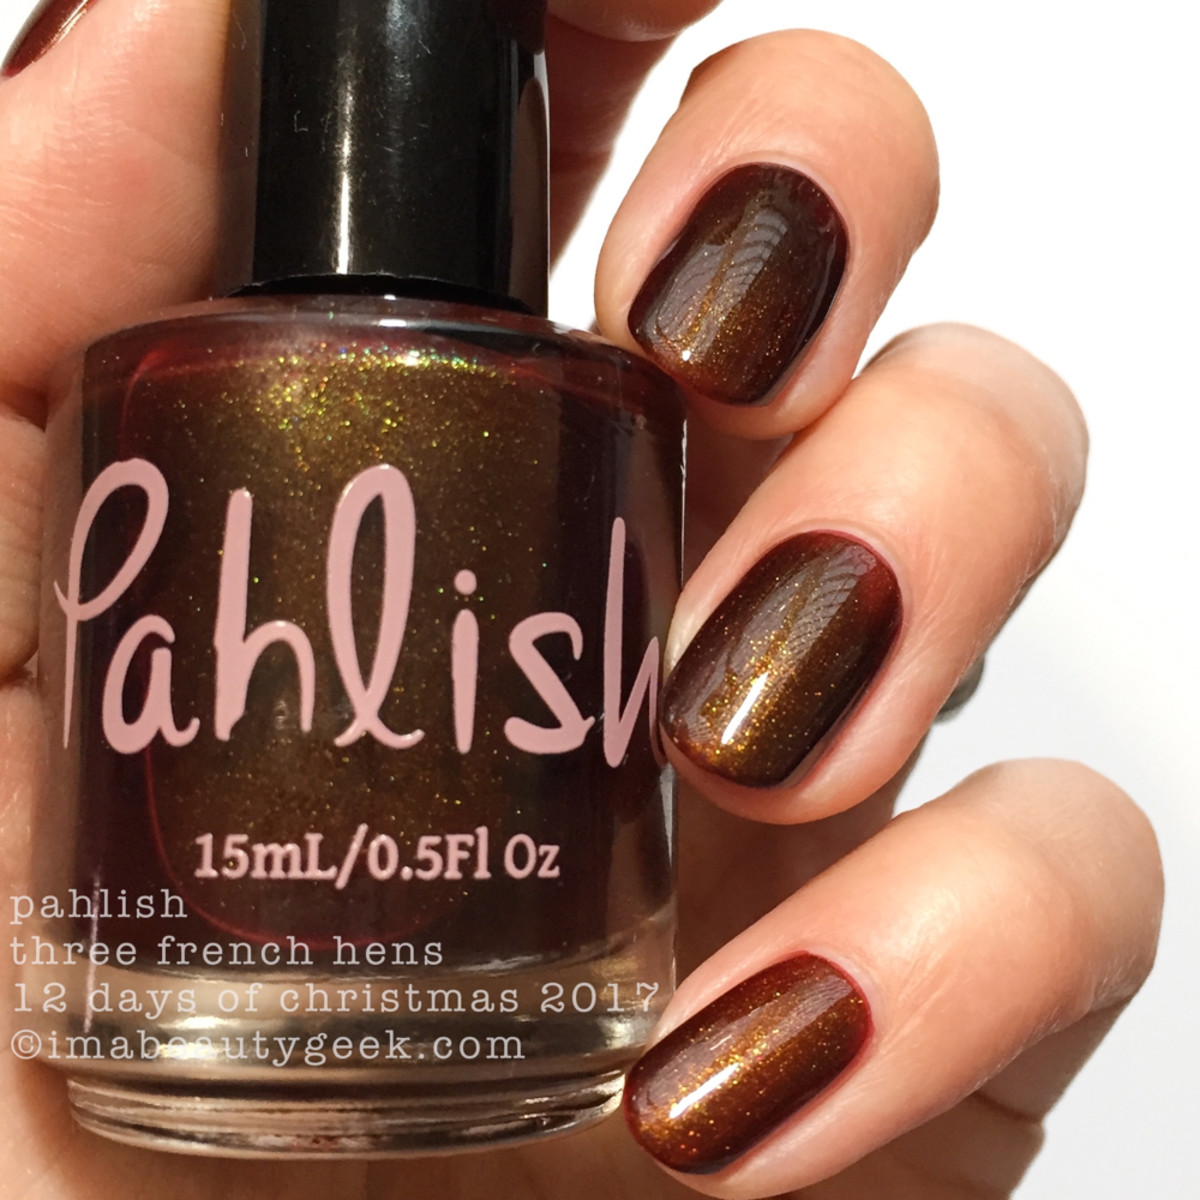 Pahlish Three French Hens - Pahlish 12 Days of Christmas 2017 2